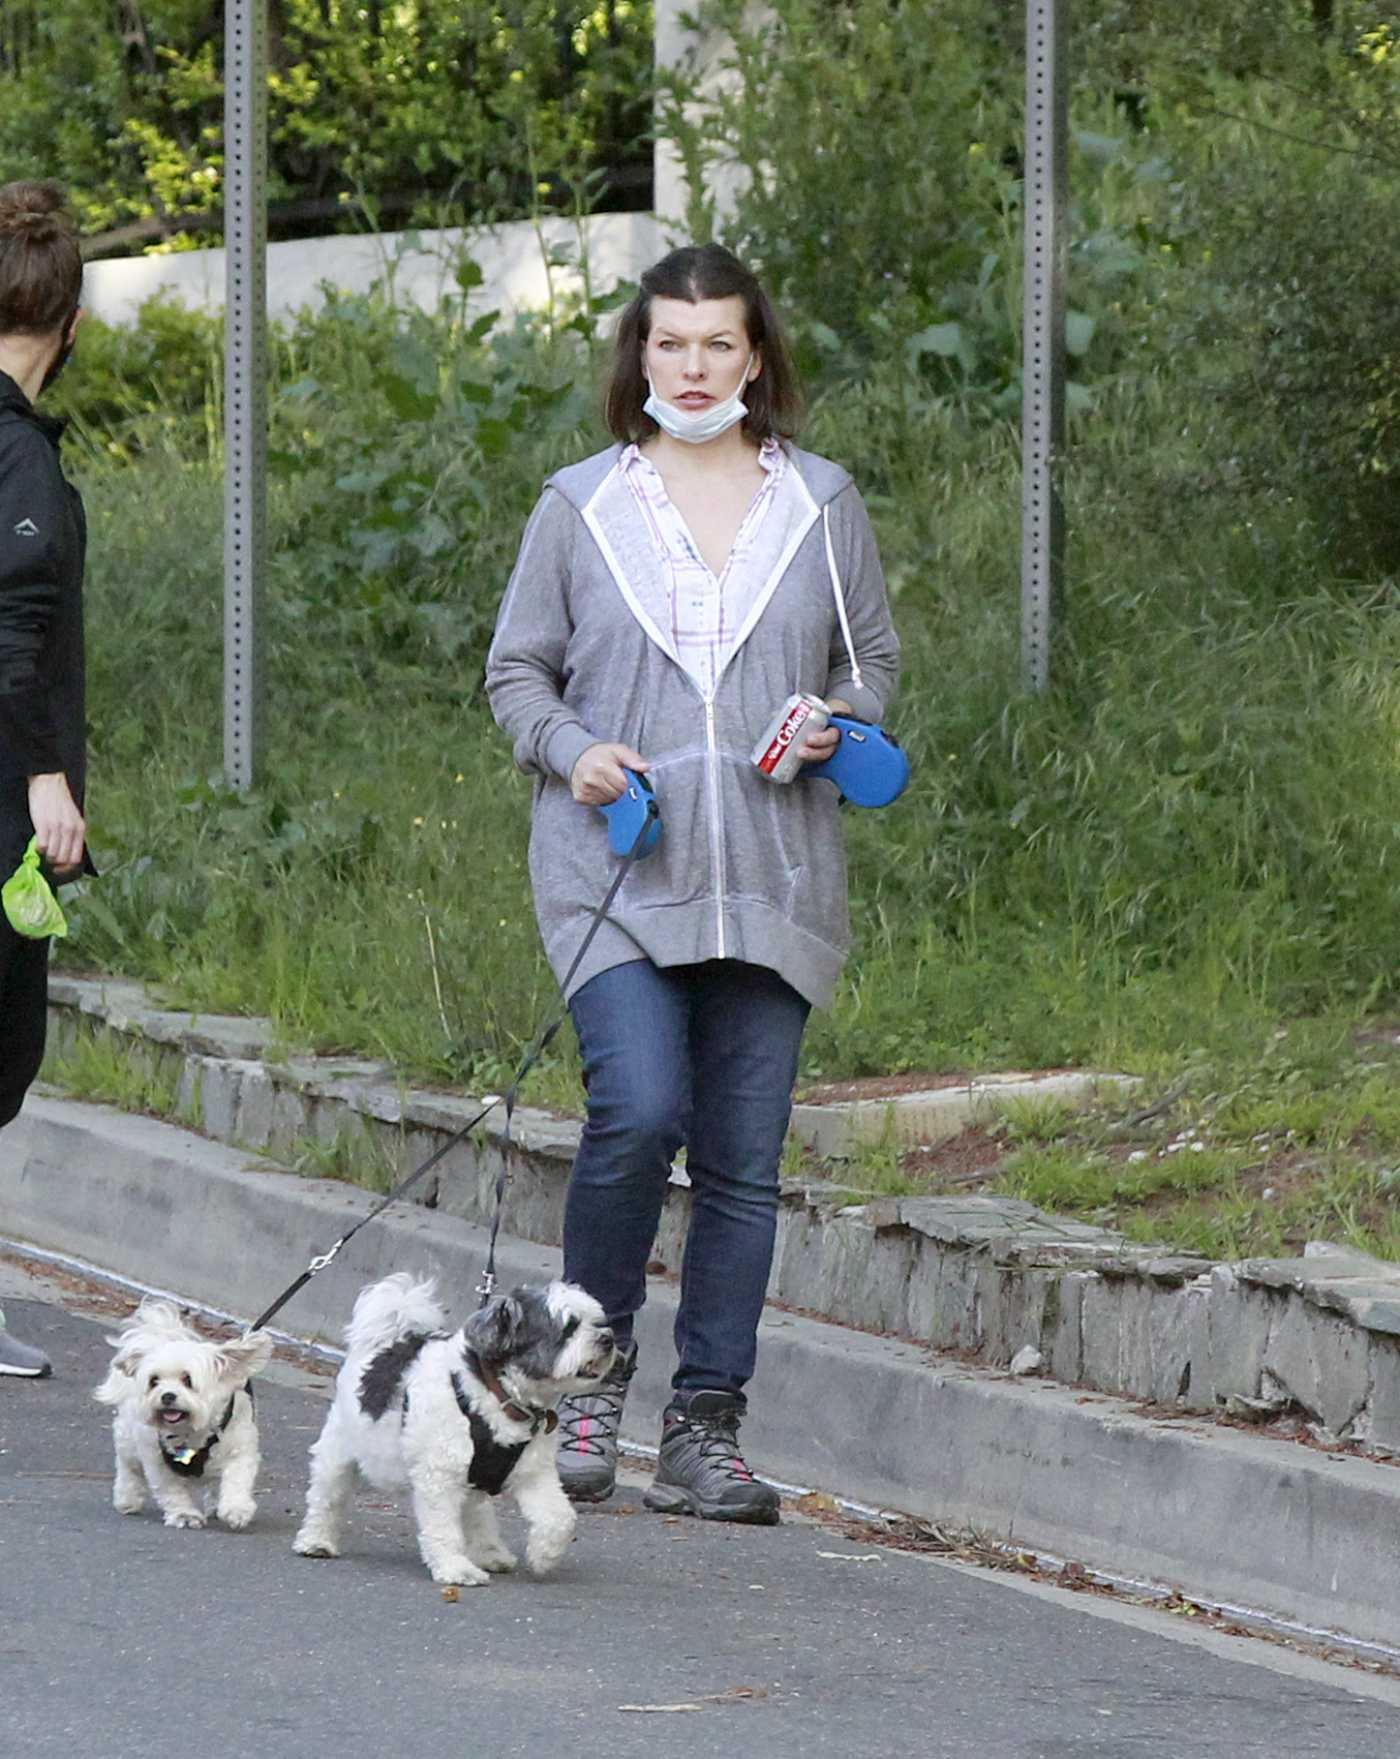 Milla Jovovich in a Gray Hoody Walks Her Dogs in Los Angeles 04/24/2020